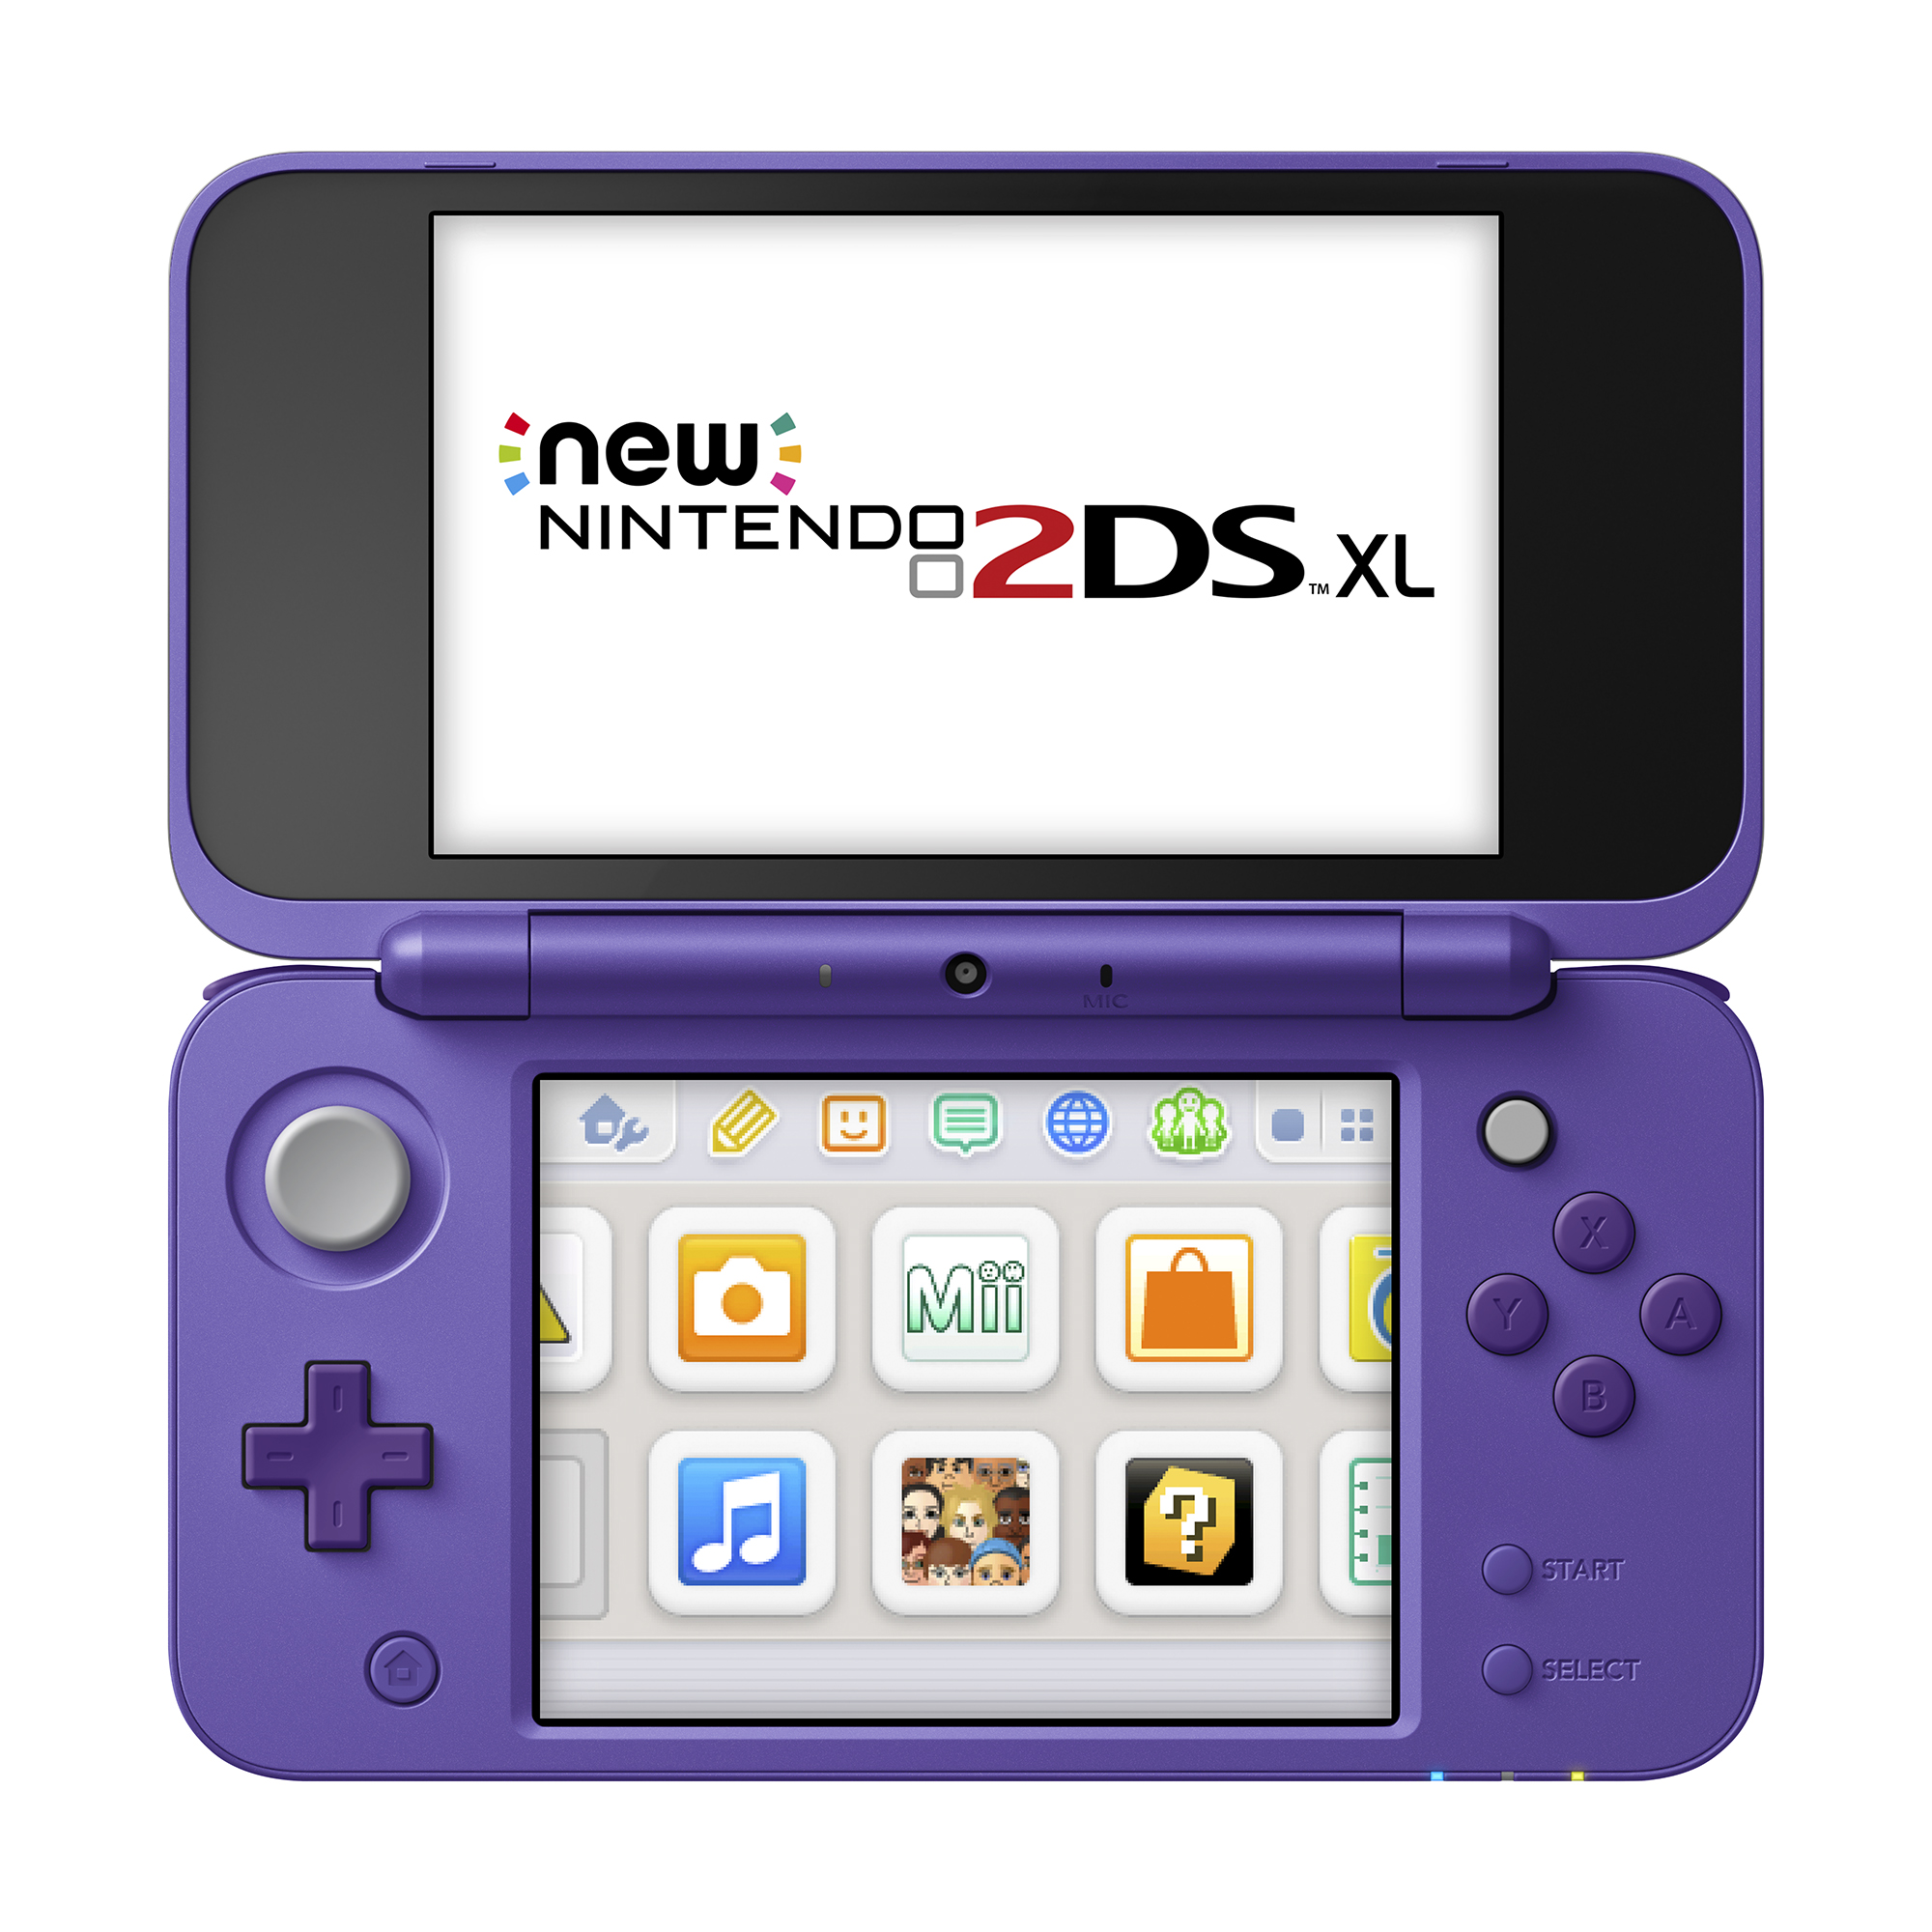 New Nintendo 2ds Xl System W Mario Kart 7 Pre Installed Purple Games Super Circuit For Gb Advance Video Silver Jansvbdb